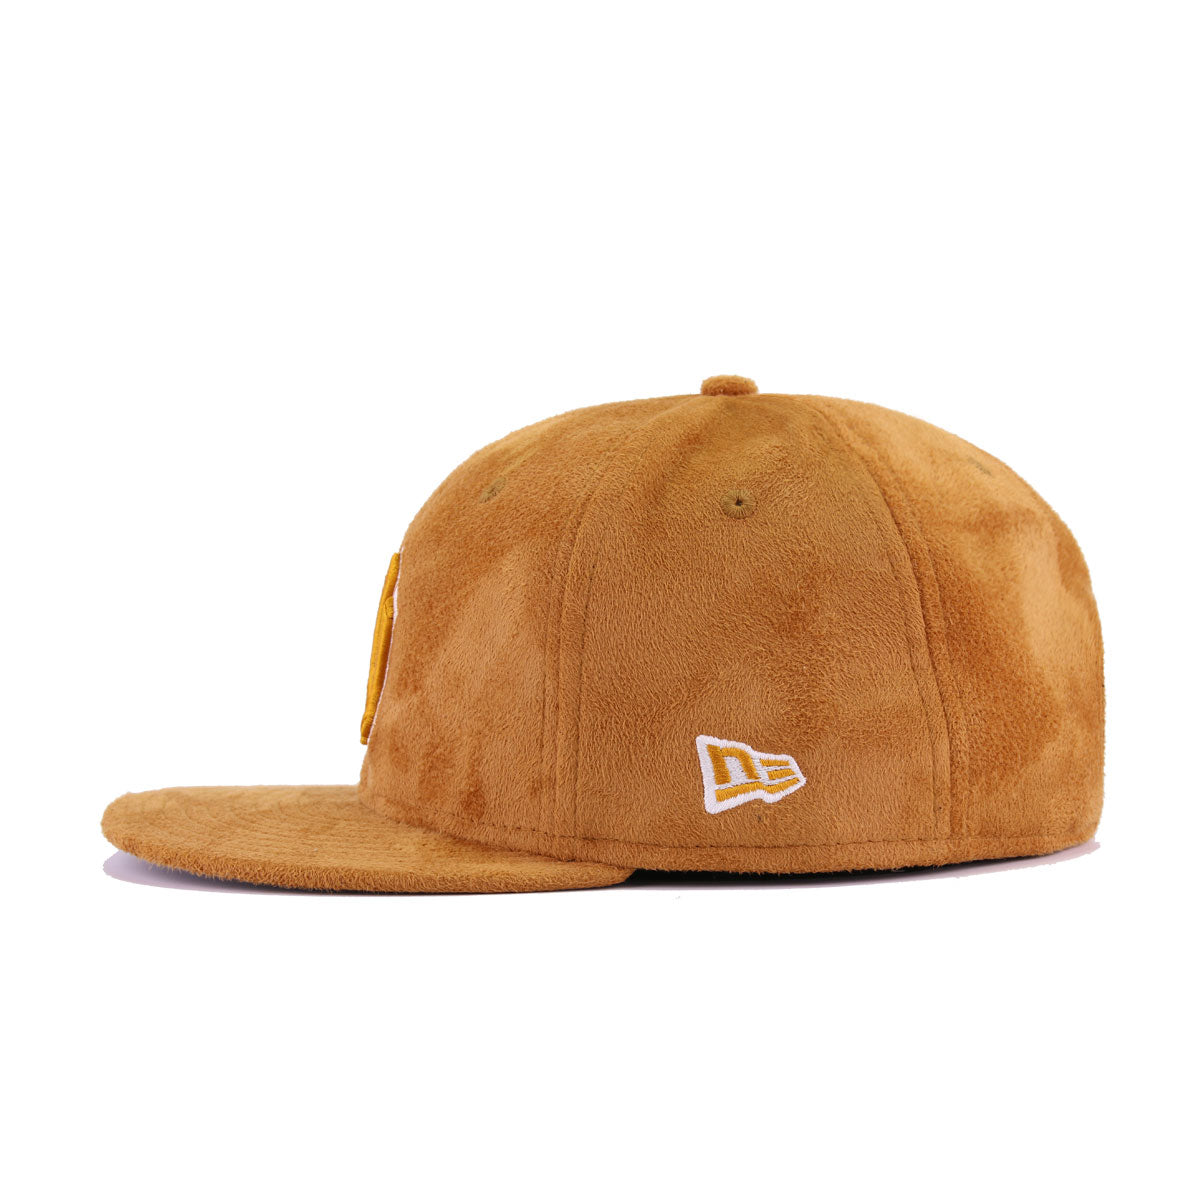 New York Yankees Panama Tan Suede New Era 9Fifty Snapback